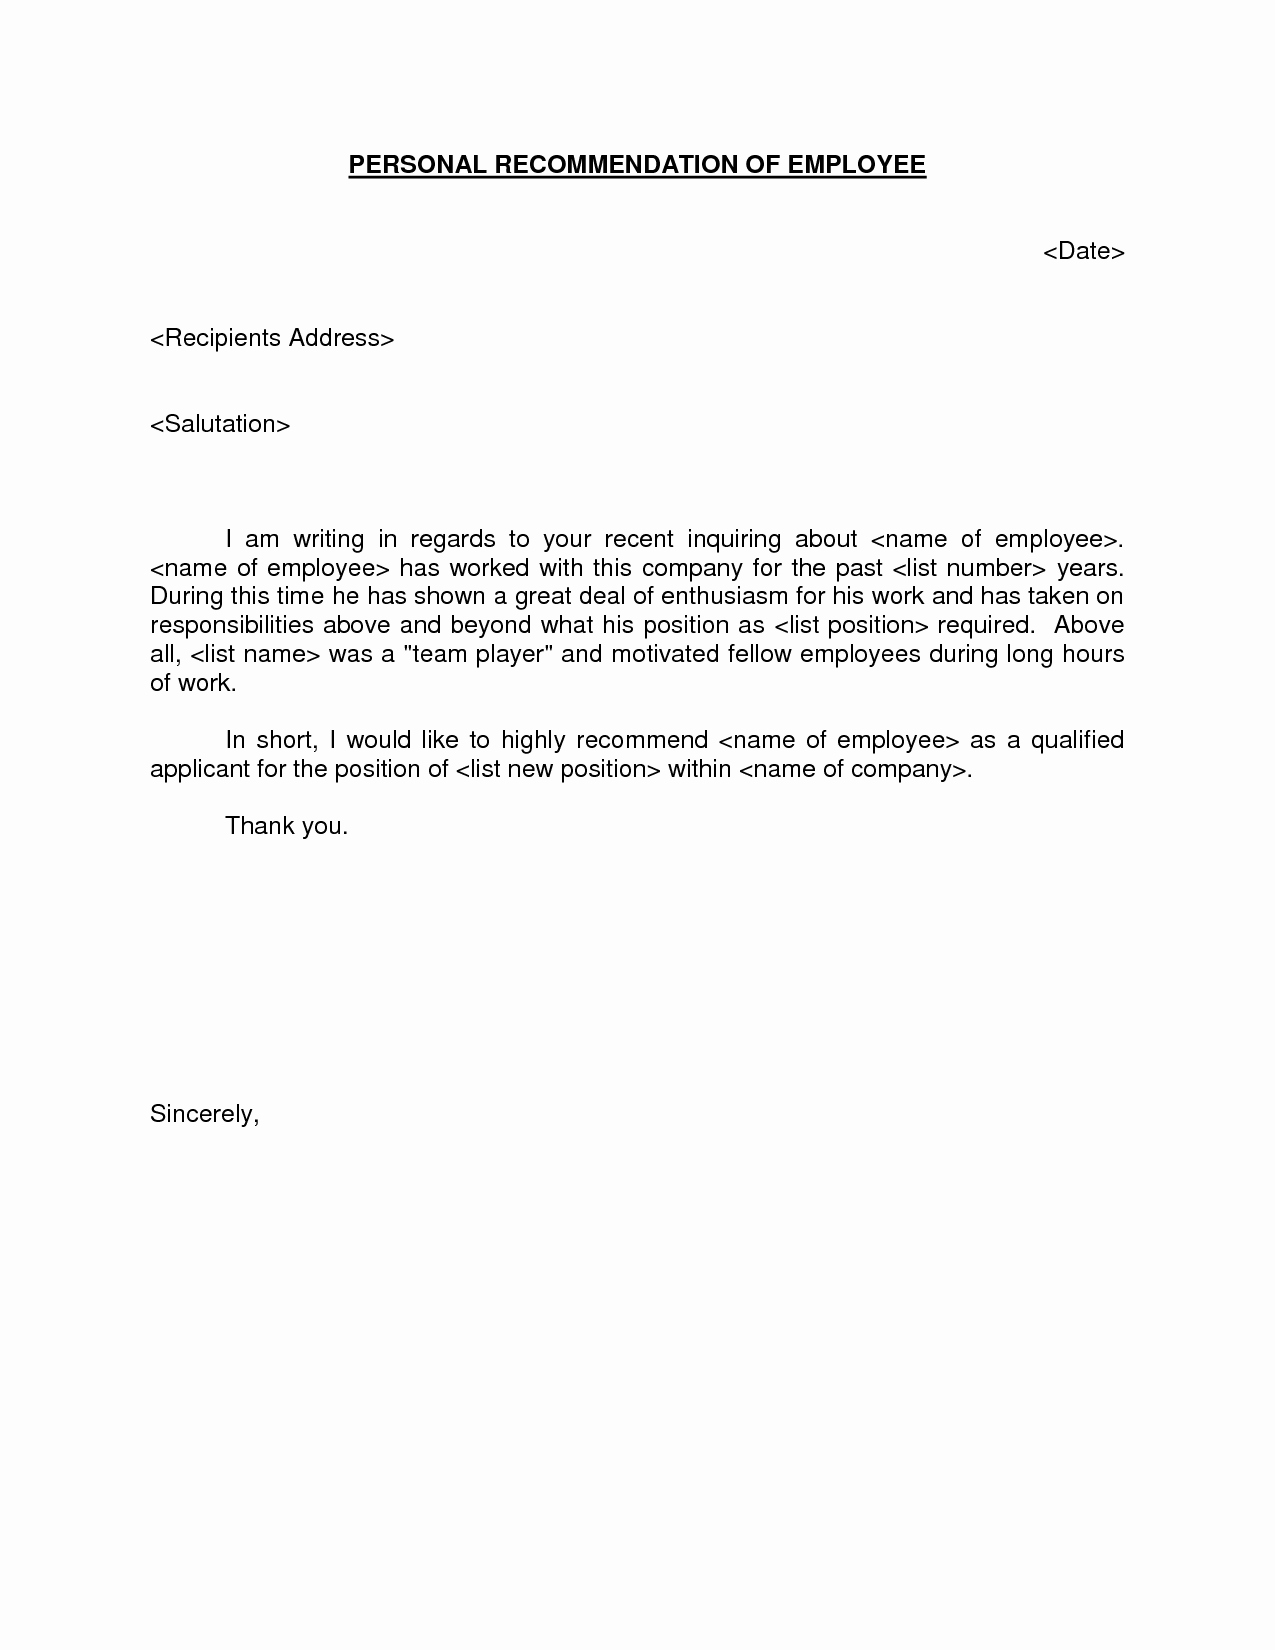 Letter Of Recommendation Letter Template Best Of Letter Re Mendation for Employment